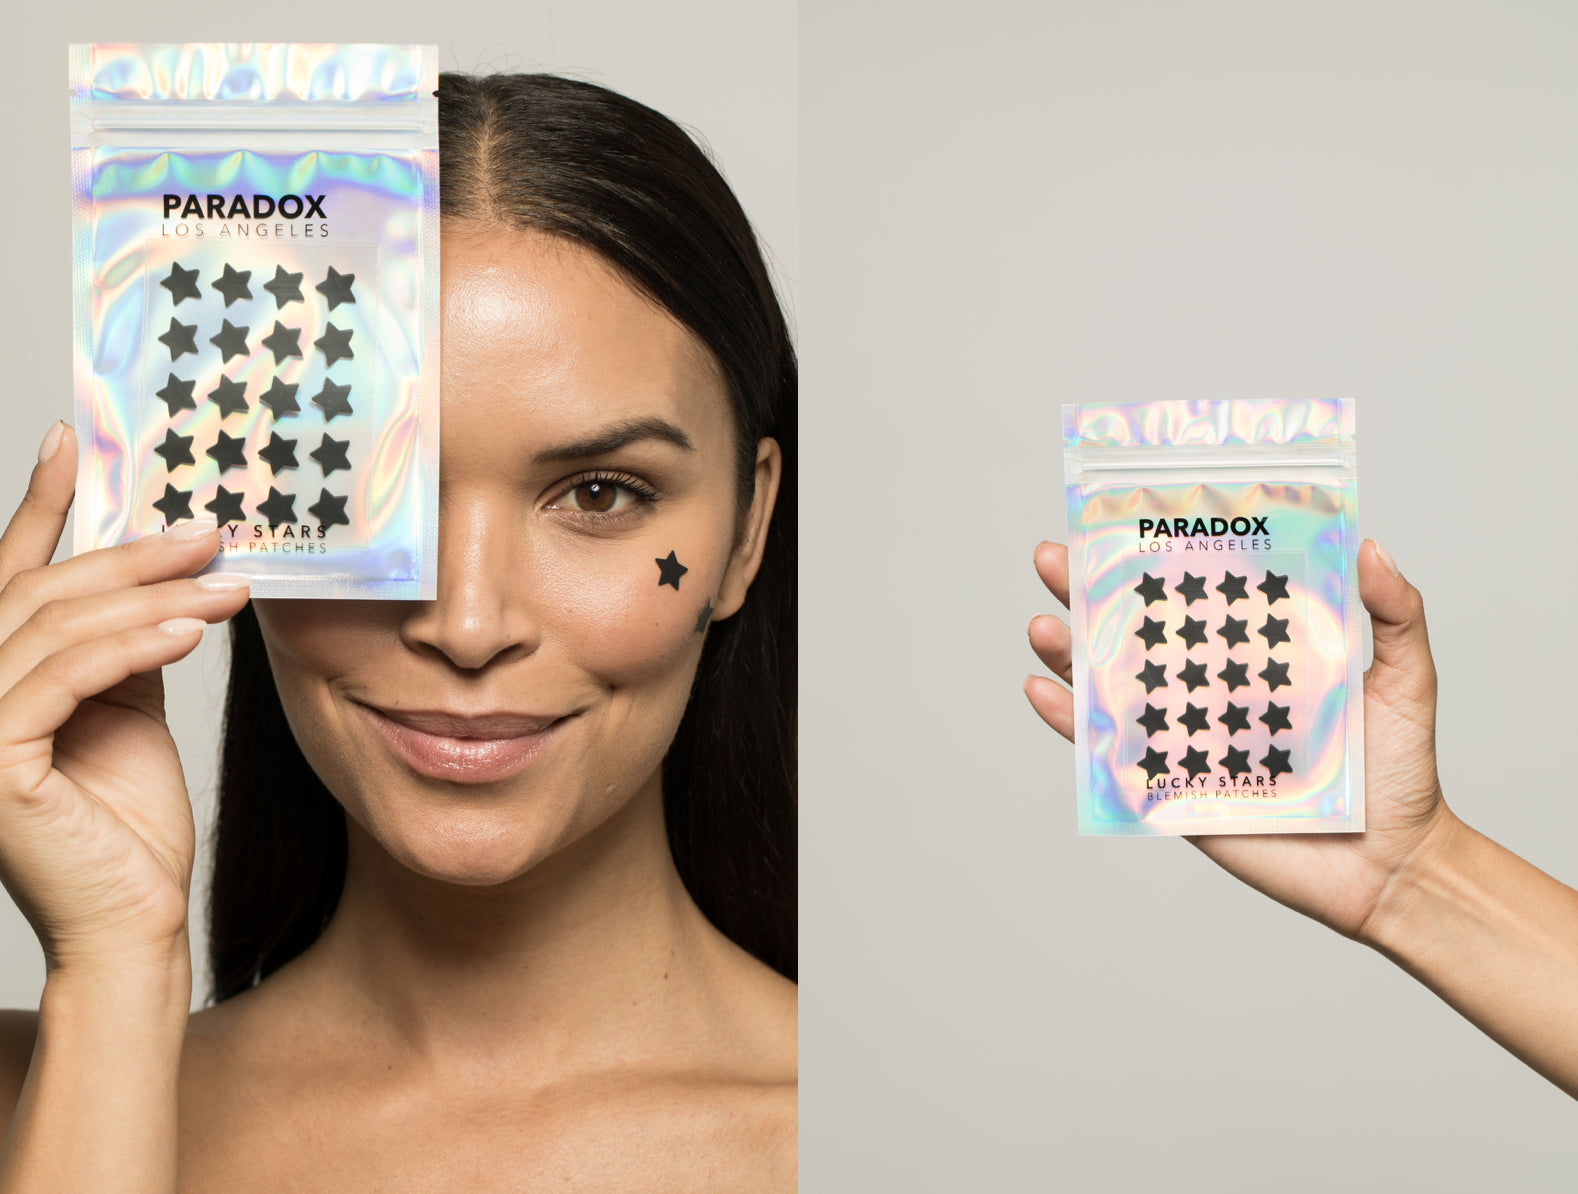 Paradox Beauty Lucky Star Face Blemish Patches - Held by Brunette Model